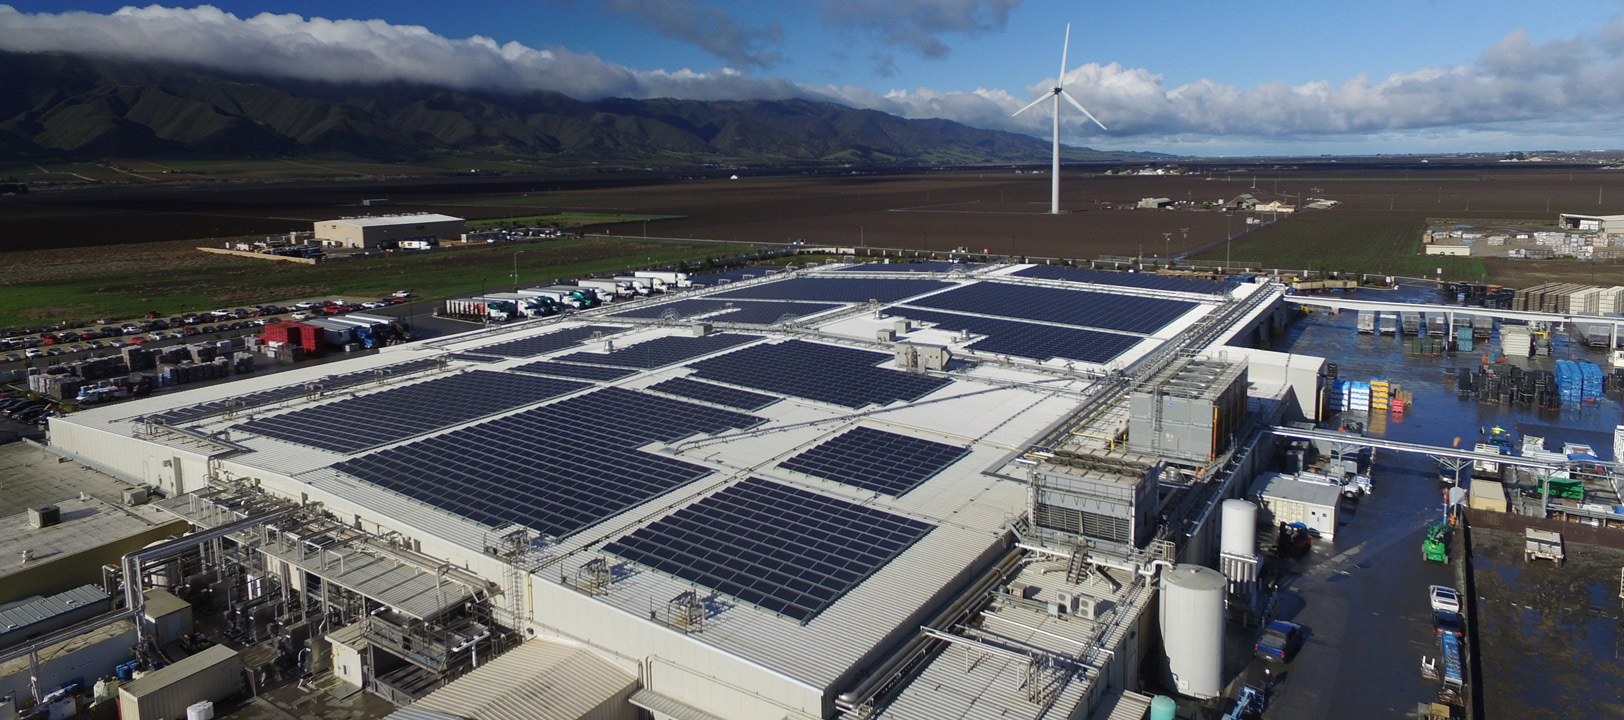 Taylor Farms' Gonzales facility employs a three-part system that uses a wind turbine, solar, and cogeneration energy system, giving it the ability to generate 4.2 MW of energy—a 90 percent energy offset—to run the 192,000-square-foot fresh processing plant